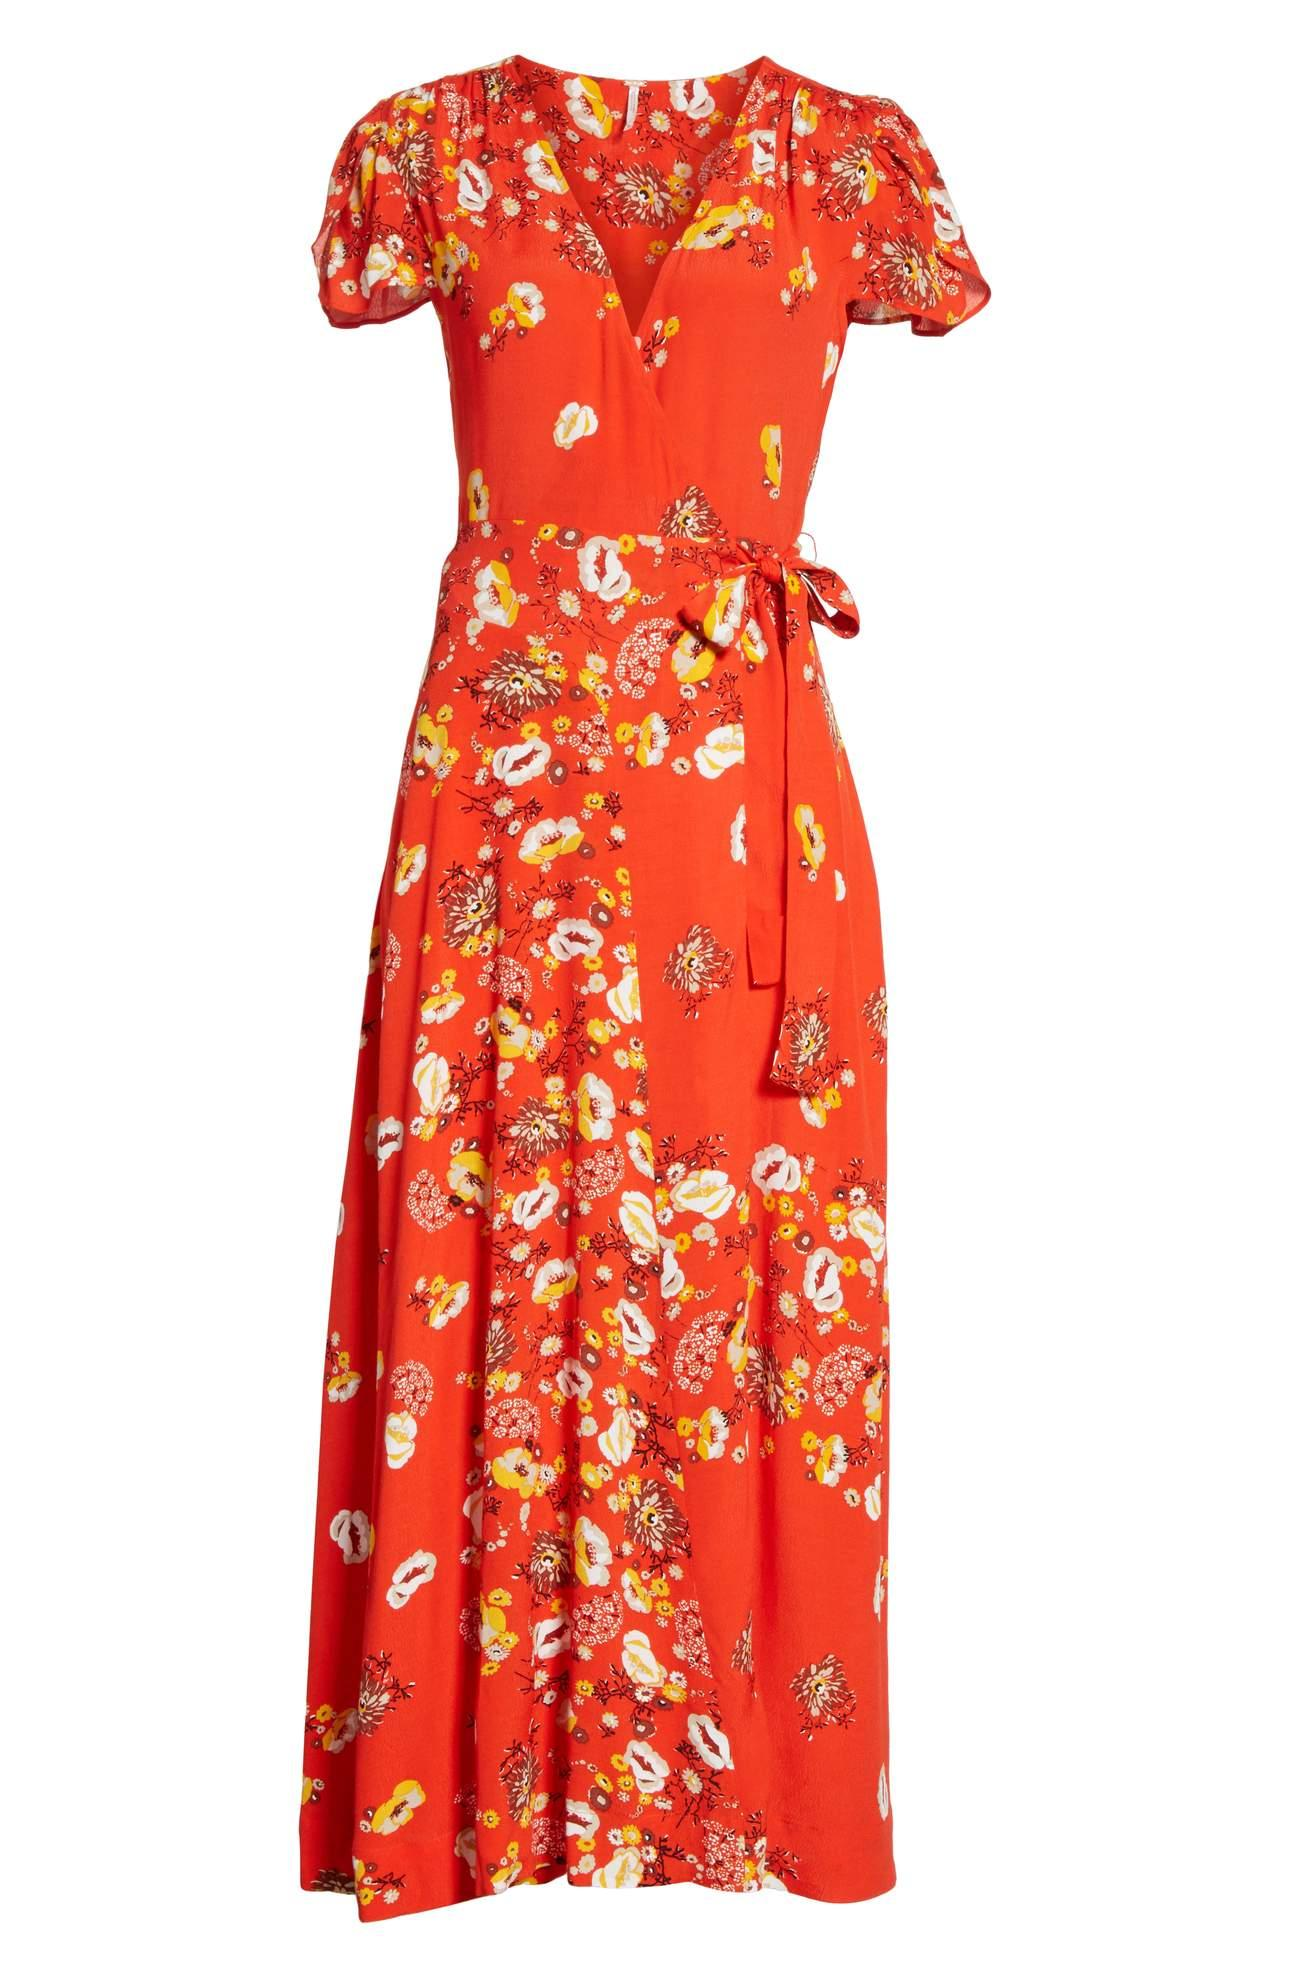 <p>Check out this gorgeous Jess Wrap Maxi Dress/FREE PEOPLE. Wrapped at the waist and tied with a sweet little bow, this ankle-grazing dress will add floral charm to your warm-weather wardrobe. $148.00 at Nordstrom. (Image: Nordstrom){&nbsp;}</p><p></p>